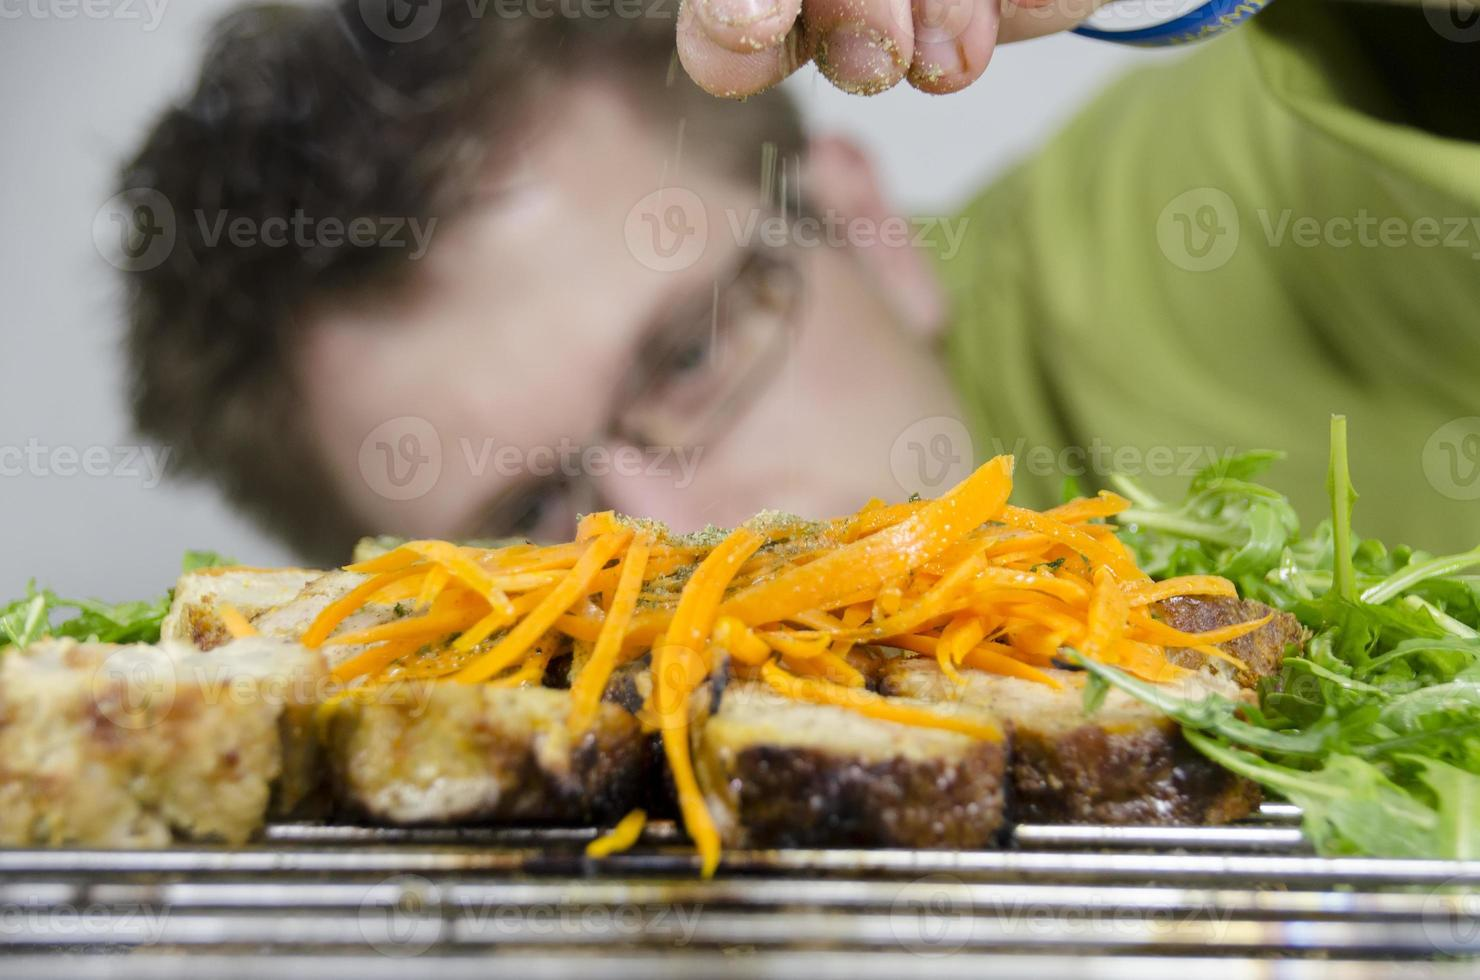 Professional chef photo